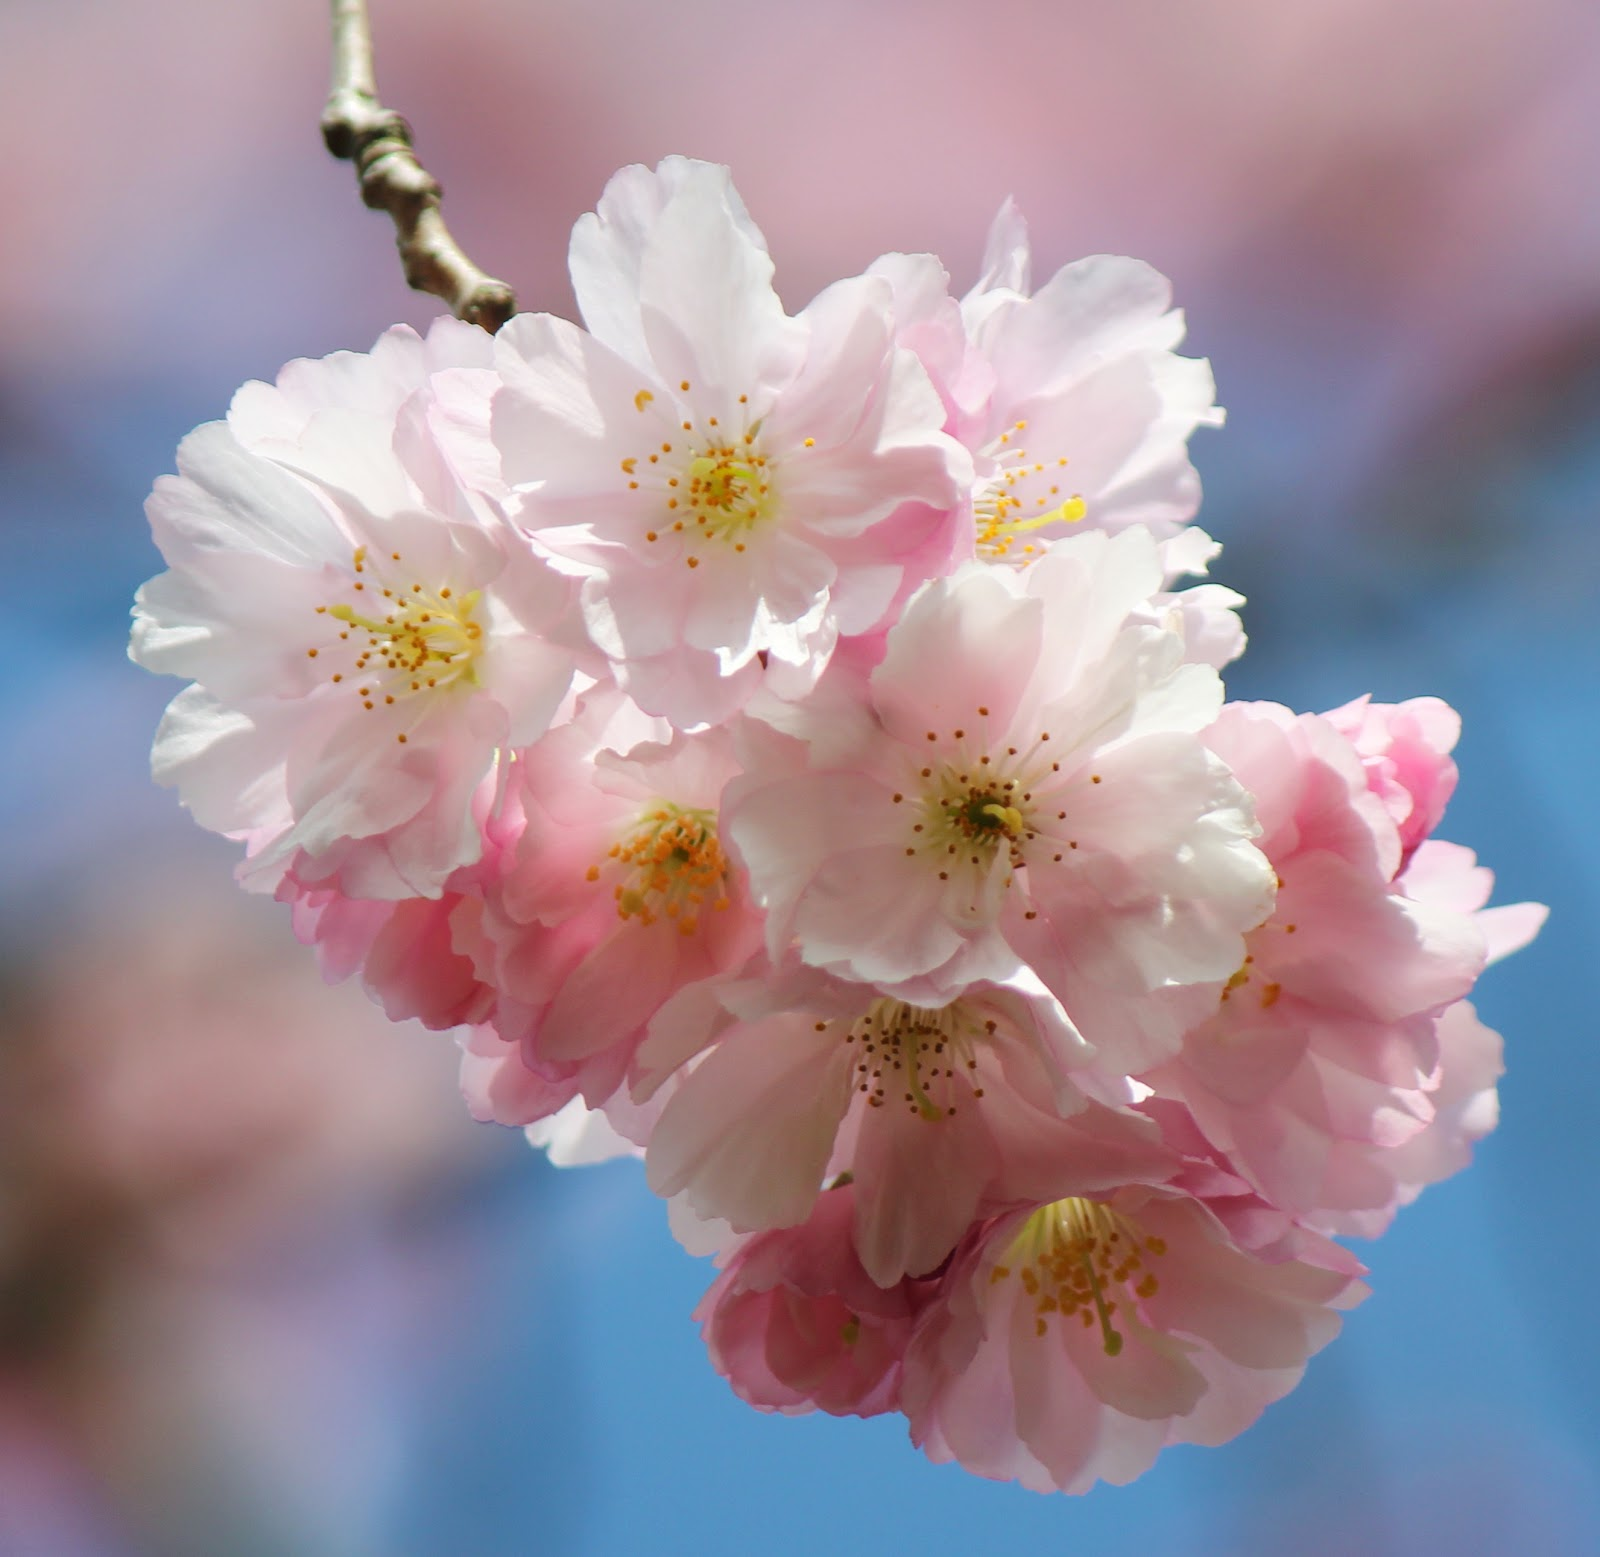 symbolism in the japanese quince Then, he saw a japanese quince which is a kind of tree from a different country and it symbols the new and rebirth of life the blackbird was singing which means the happiness and pleasure in the daily life.